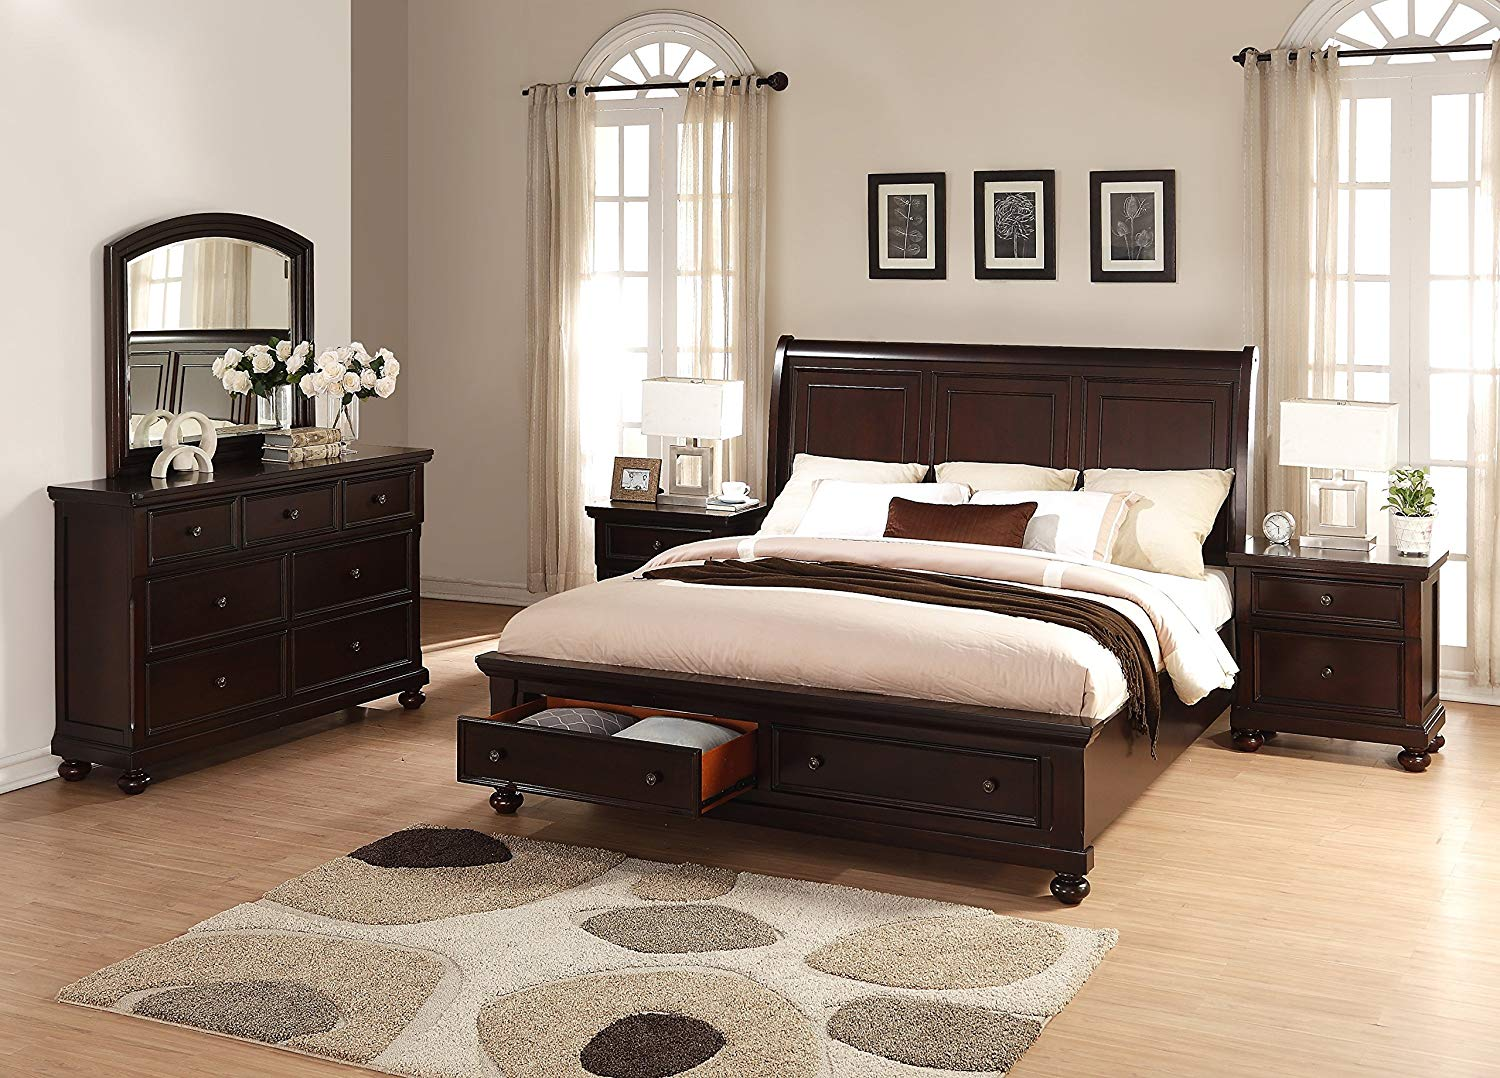 Roundhill Furniture Brishland Storage Bedroom Set Includes Queen Bed, Dresser, Mirror and 2 Nighstands, Rustic Cherry